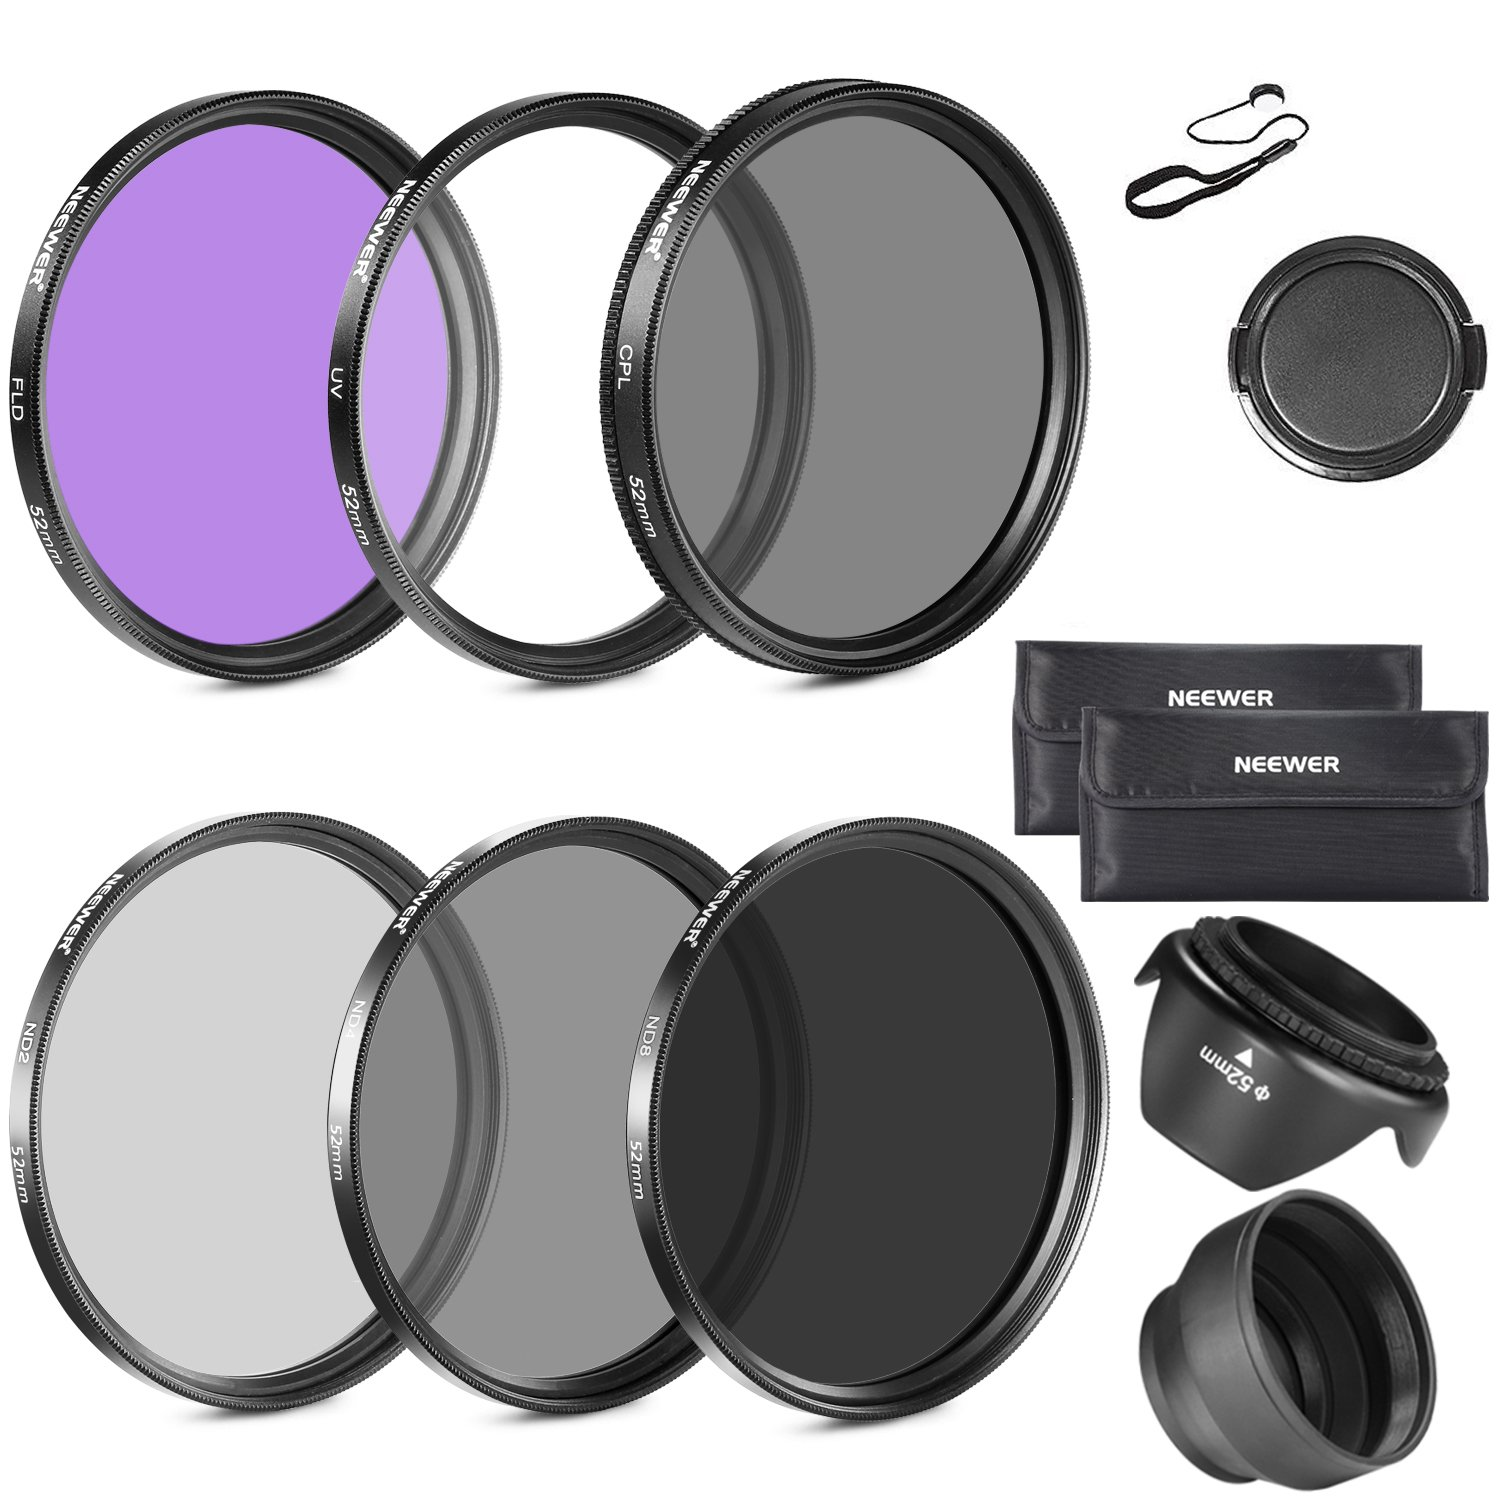 Neewer 58MM Lens Filter Accessory Kit (UV, CPL, FLD) for CANON EOS Rebel T5i T4i T3i T3 T2i T1i XT XTi XSi SL1 DSLR Cameras 10083800@@##1